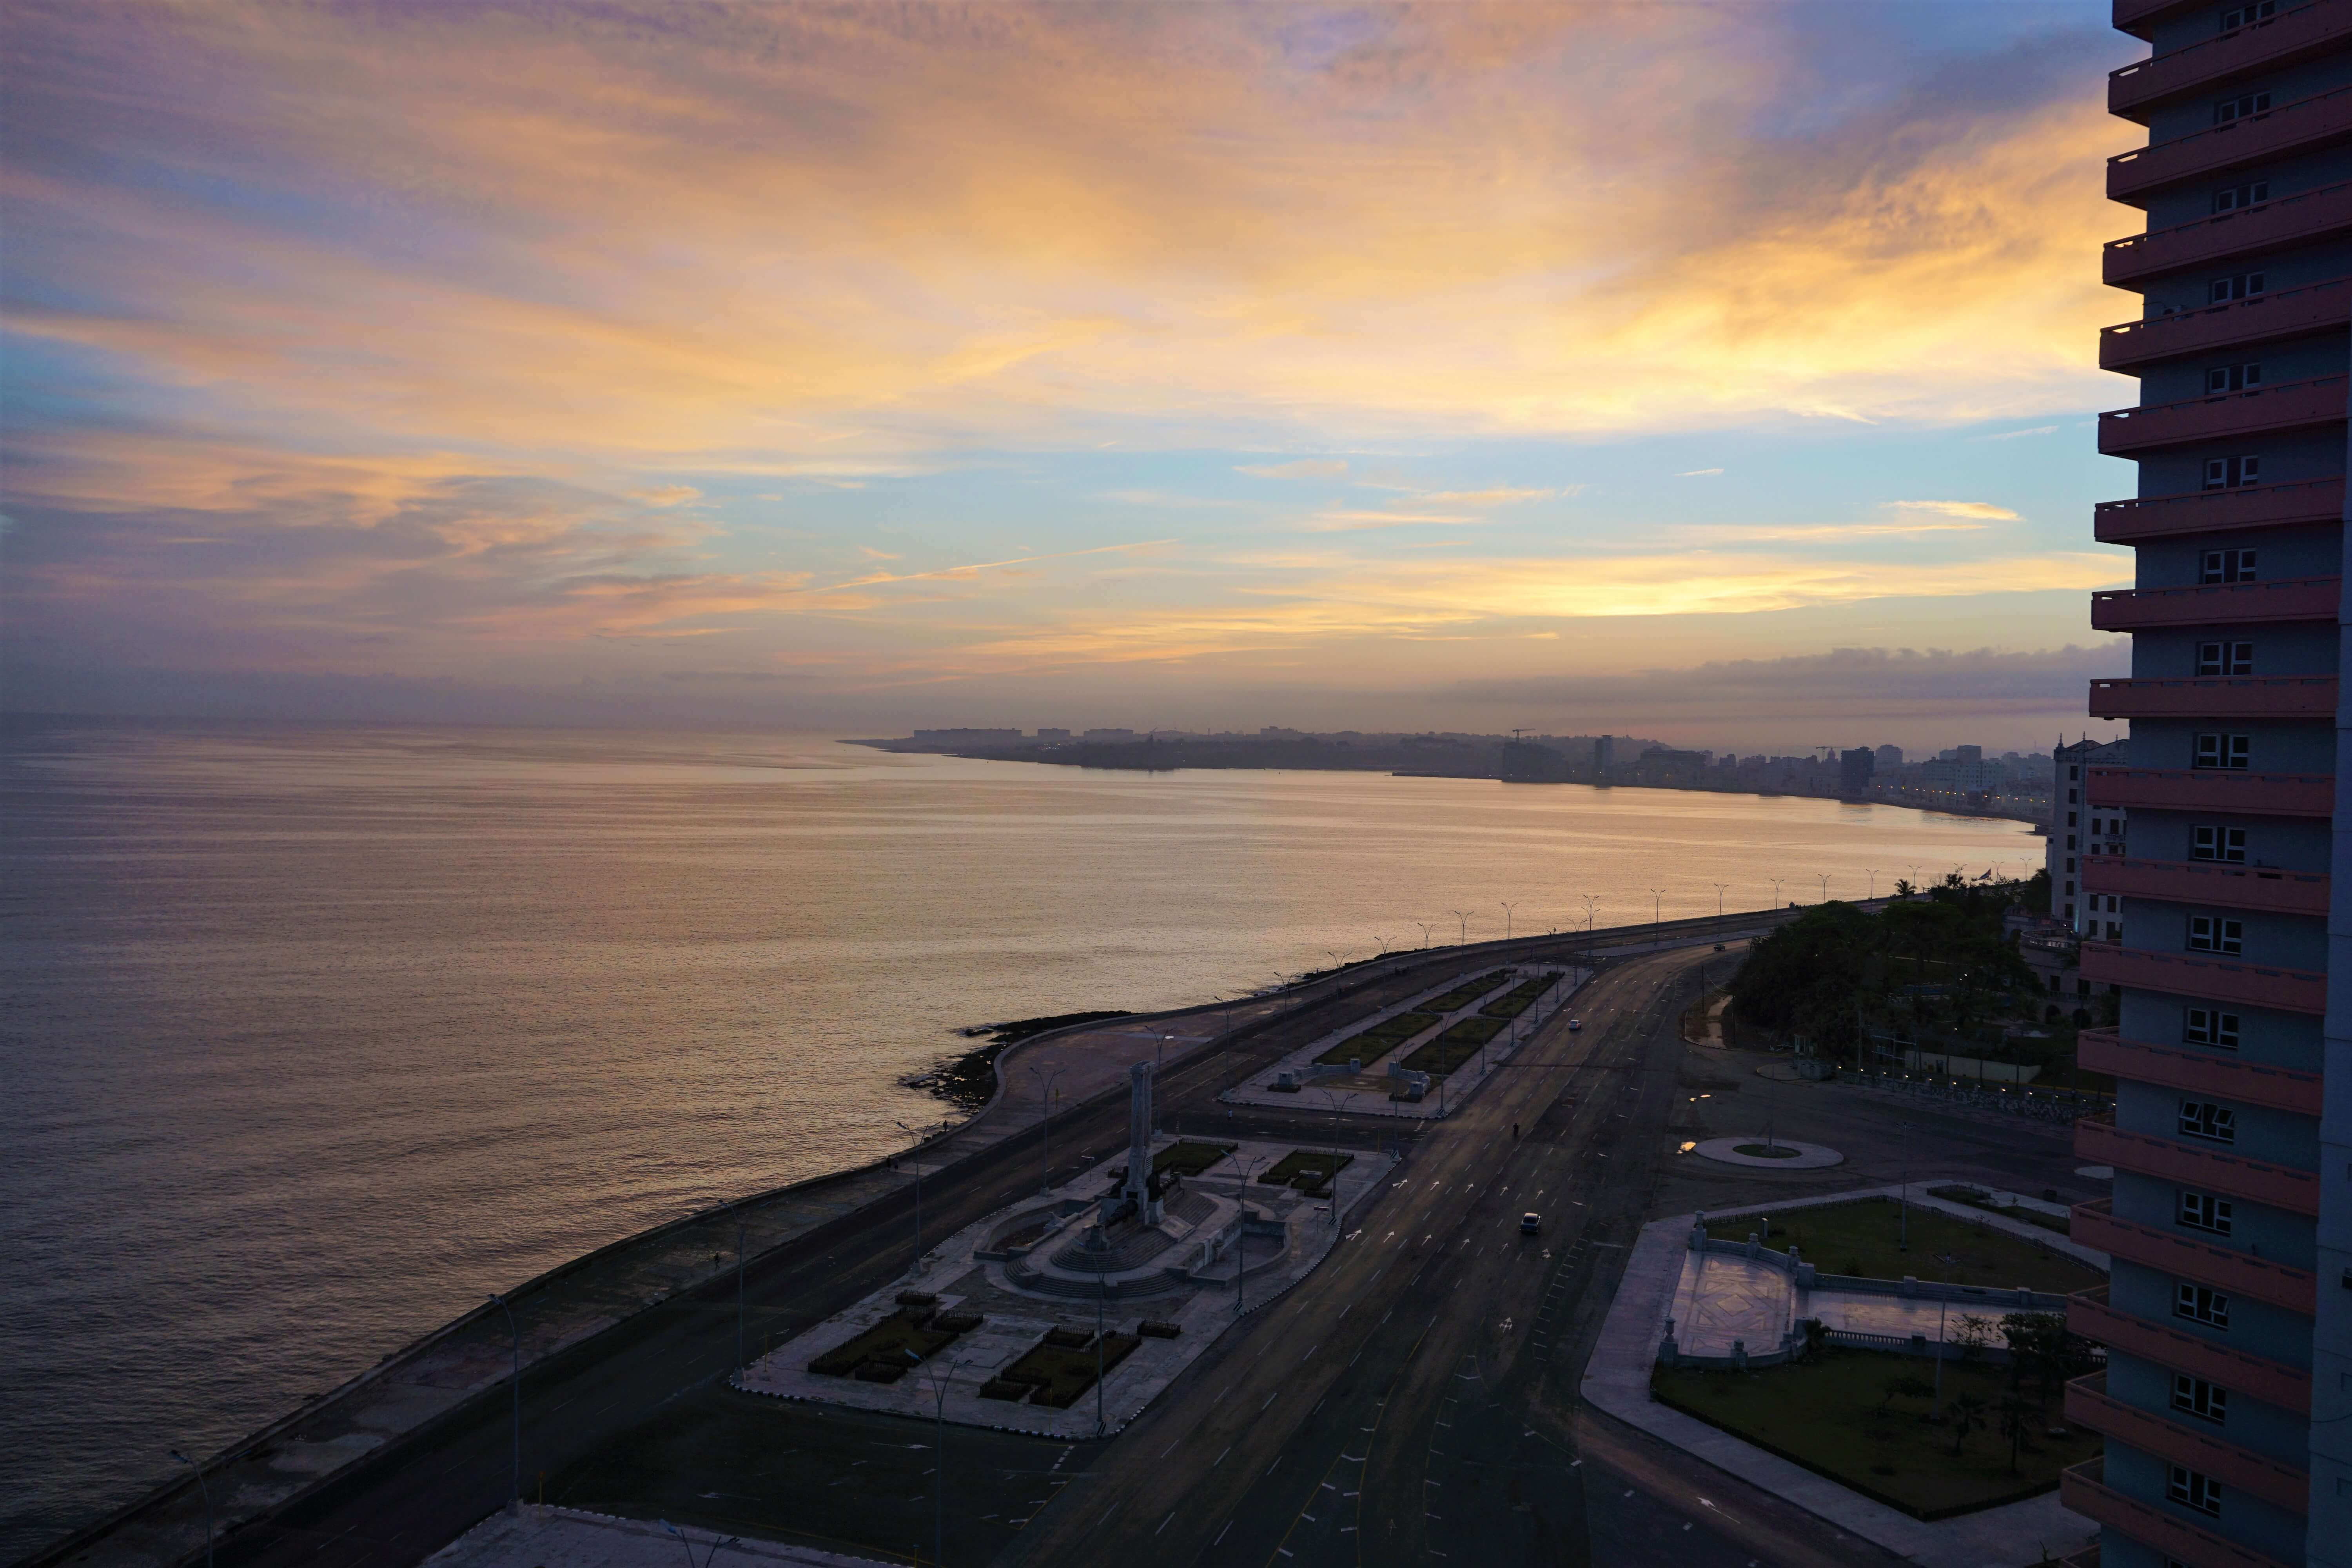 Sunrise over the Havana Harbor and view of the Malecon